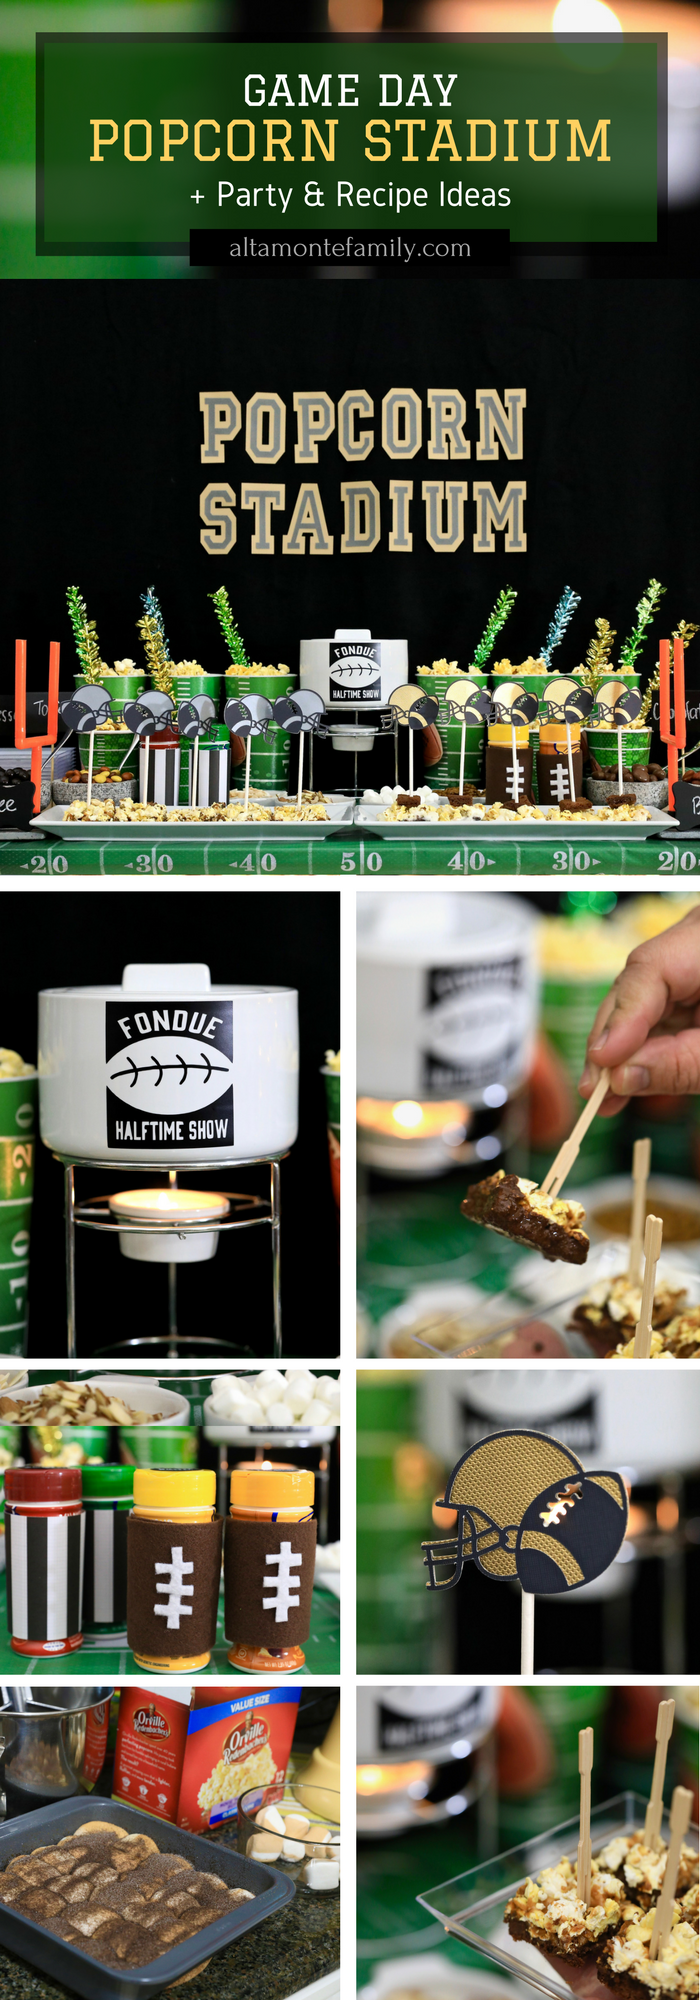 Game Day Popcorn Fondue Stadium and Football Party Ideas